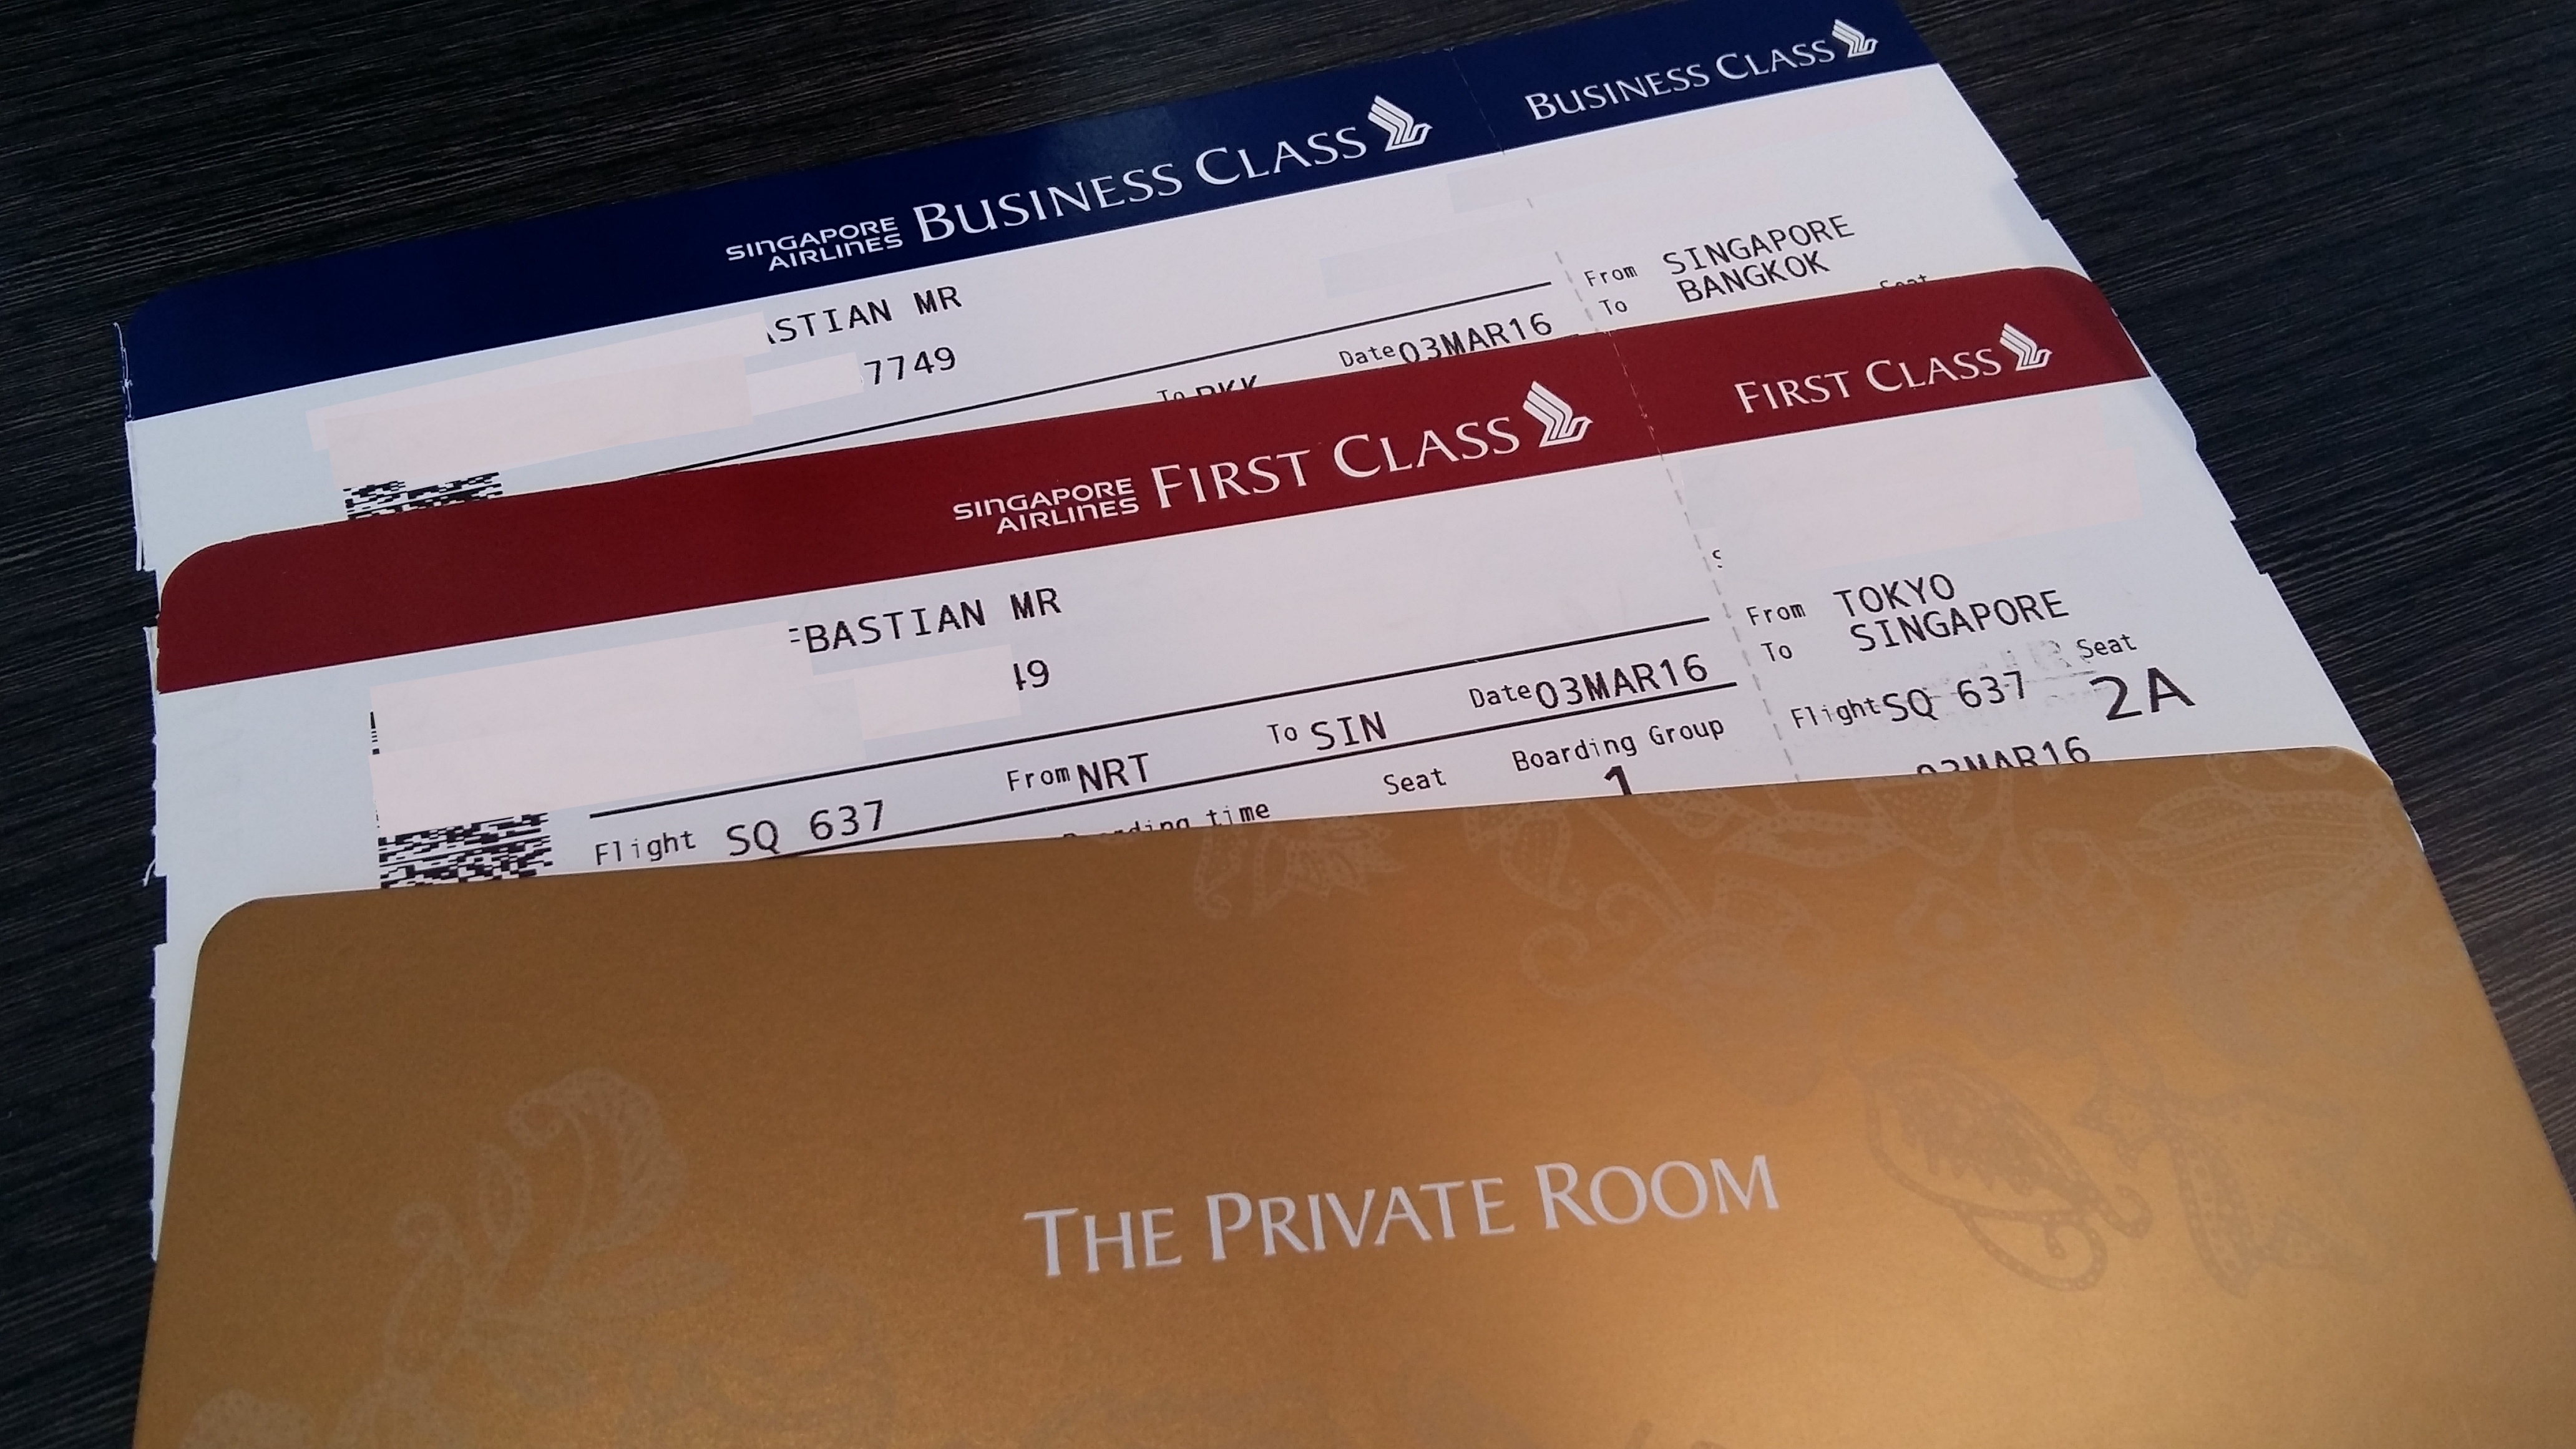 Finally Singapore Airlines Now Offers Unlimited Complimentary Internet To First Class Suites Passengers Loyaltylobby